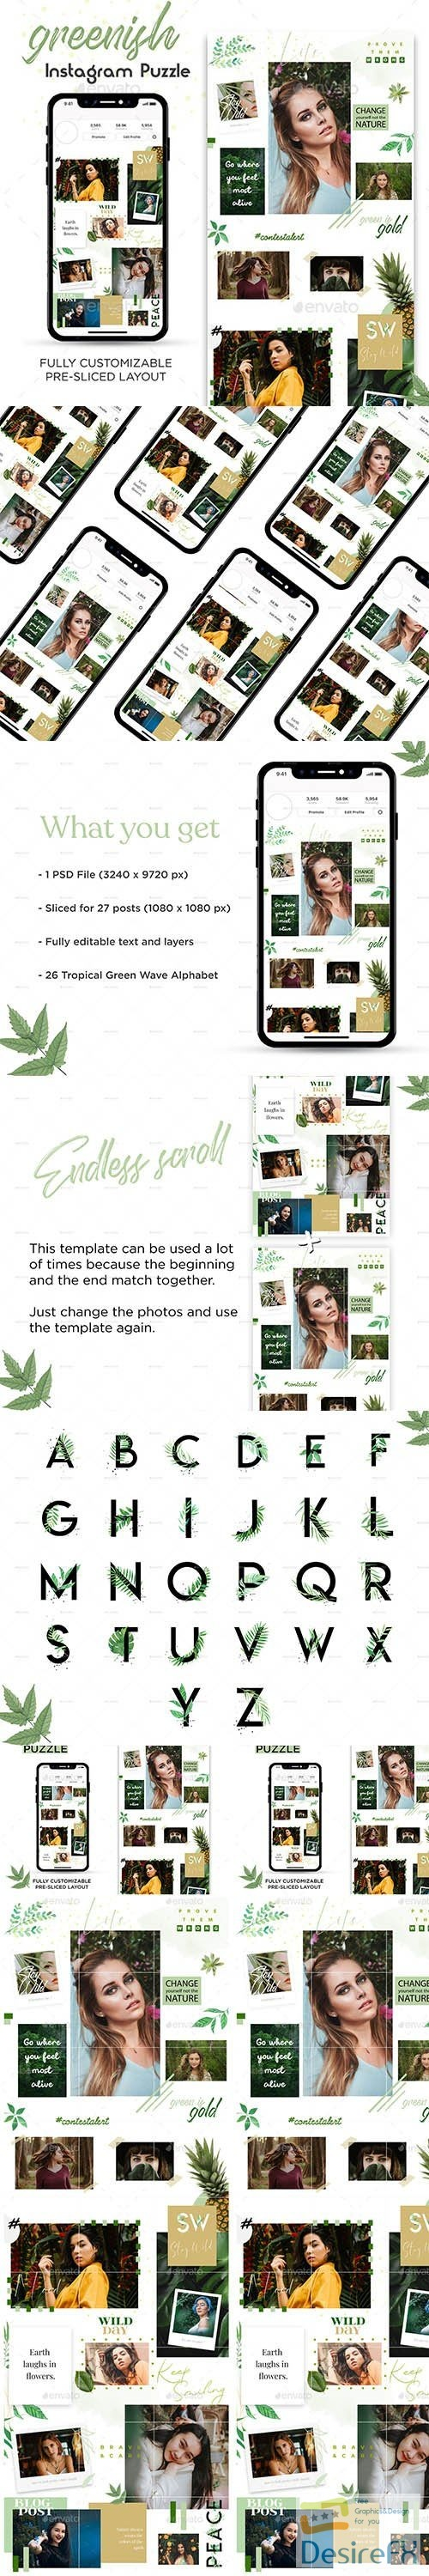 layered-psd - Greenish Instagram Puzzle Template 24242169